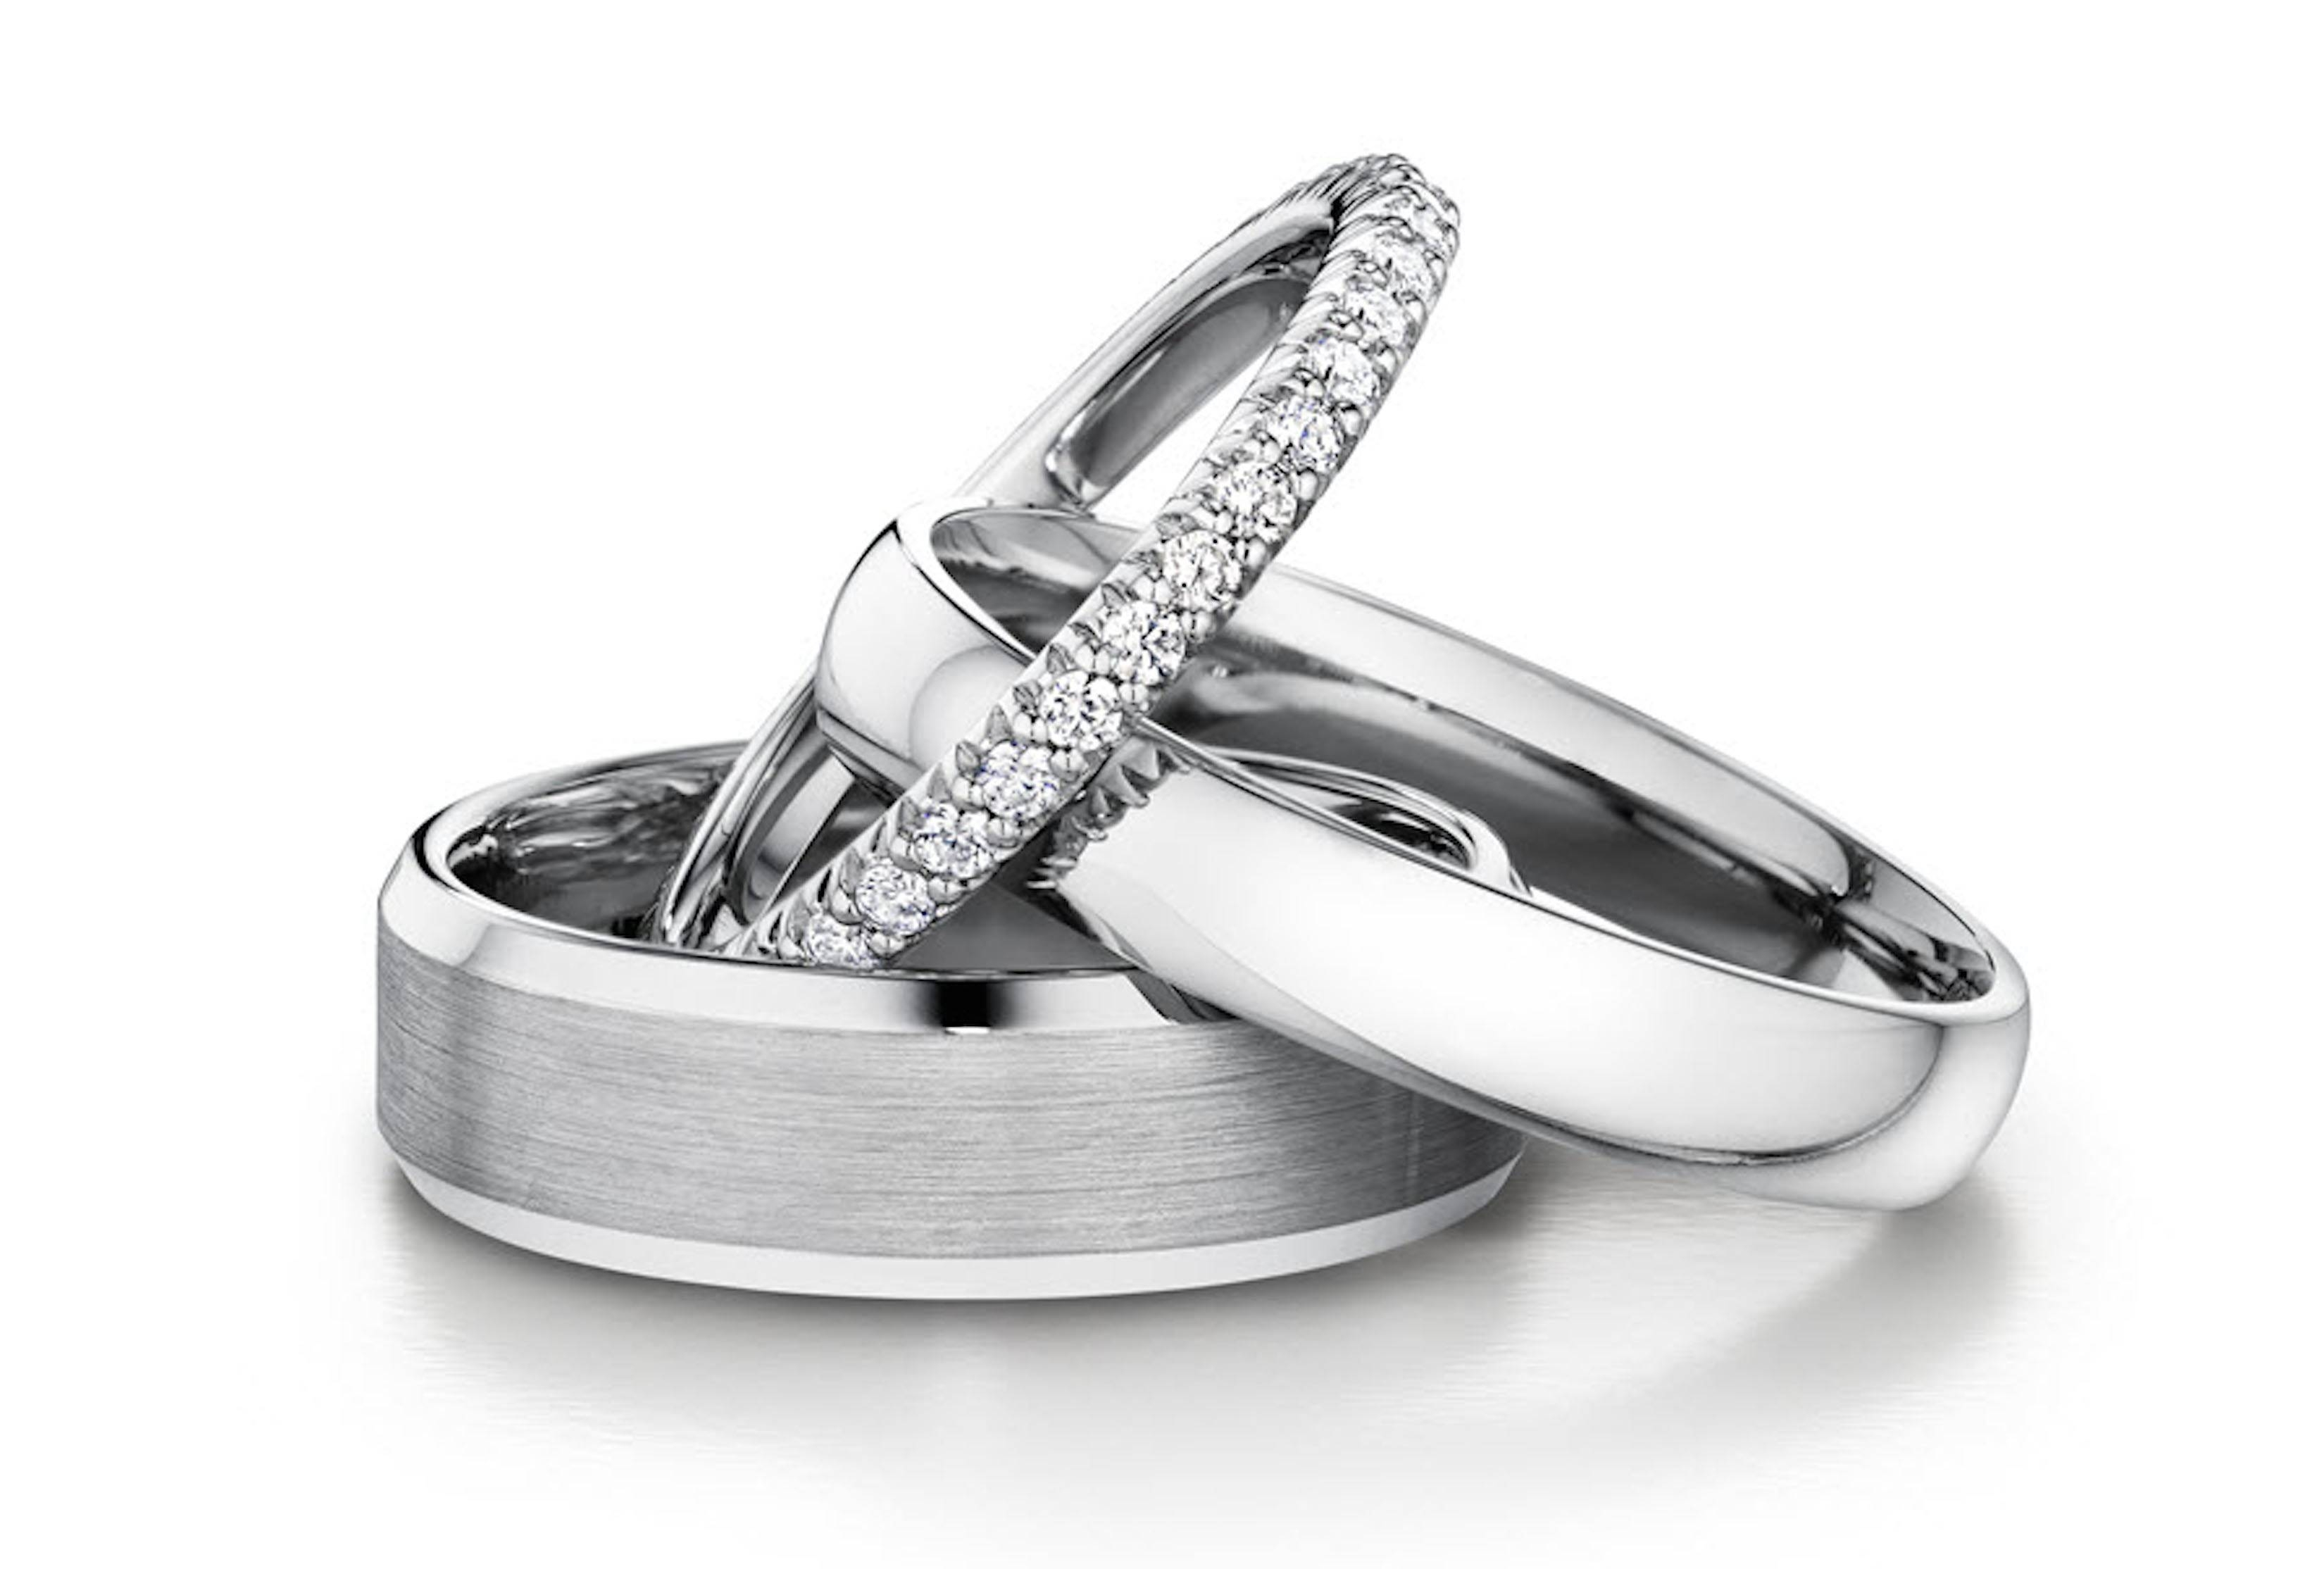 Popular Wedding Band Metals For Men & Women | Ritani Regarding Men's Wedding Bands Metals (View 13 of 15)